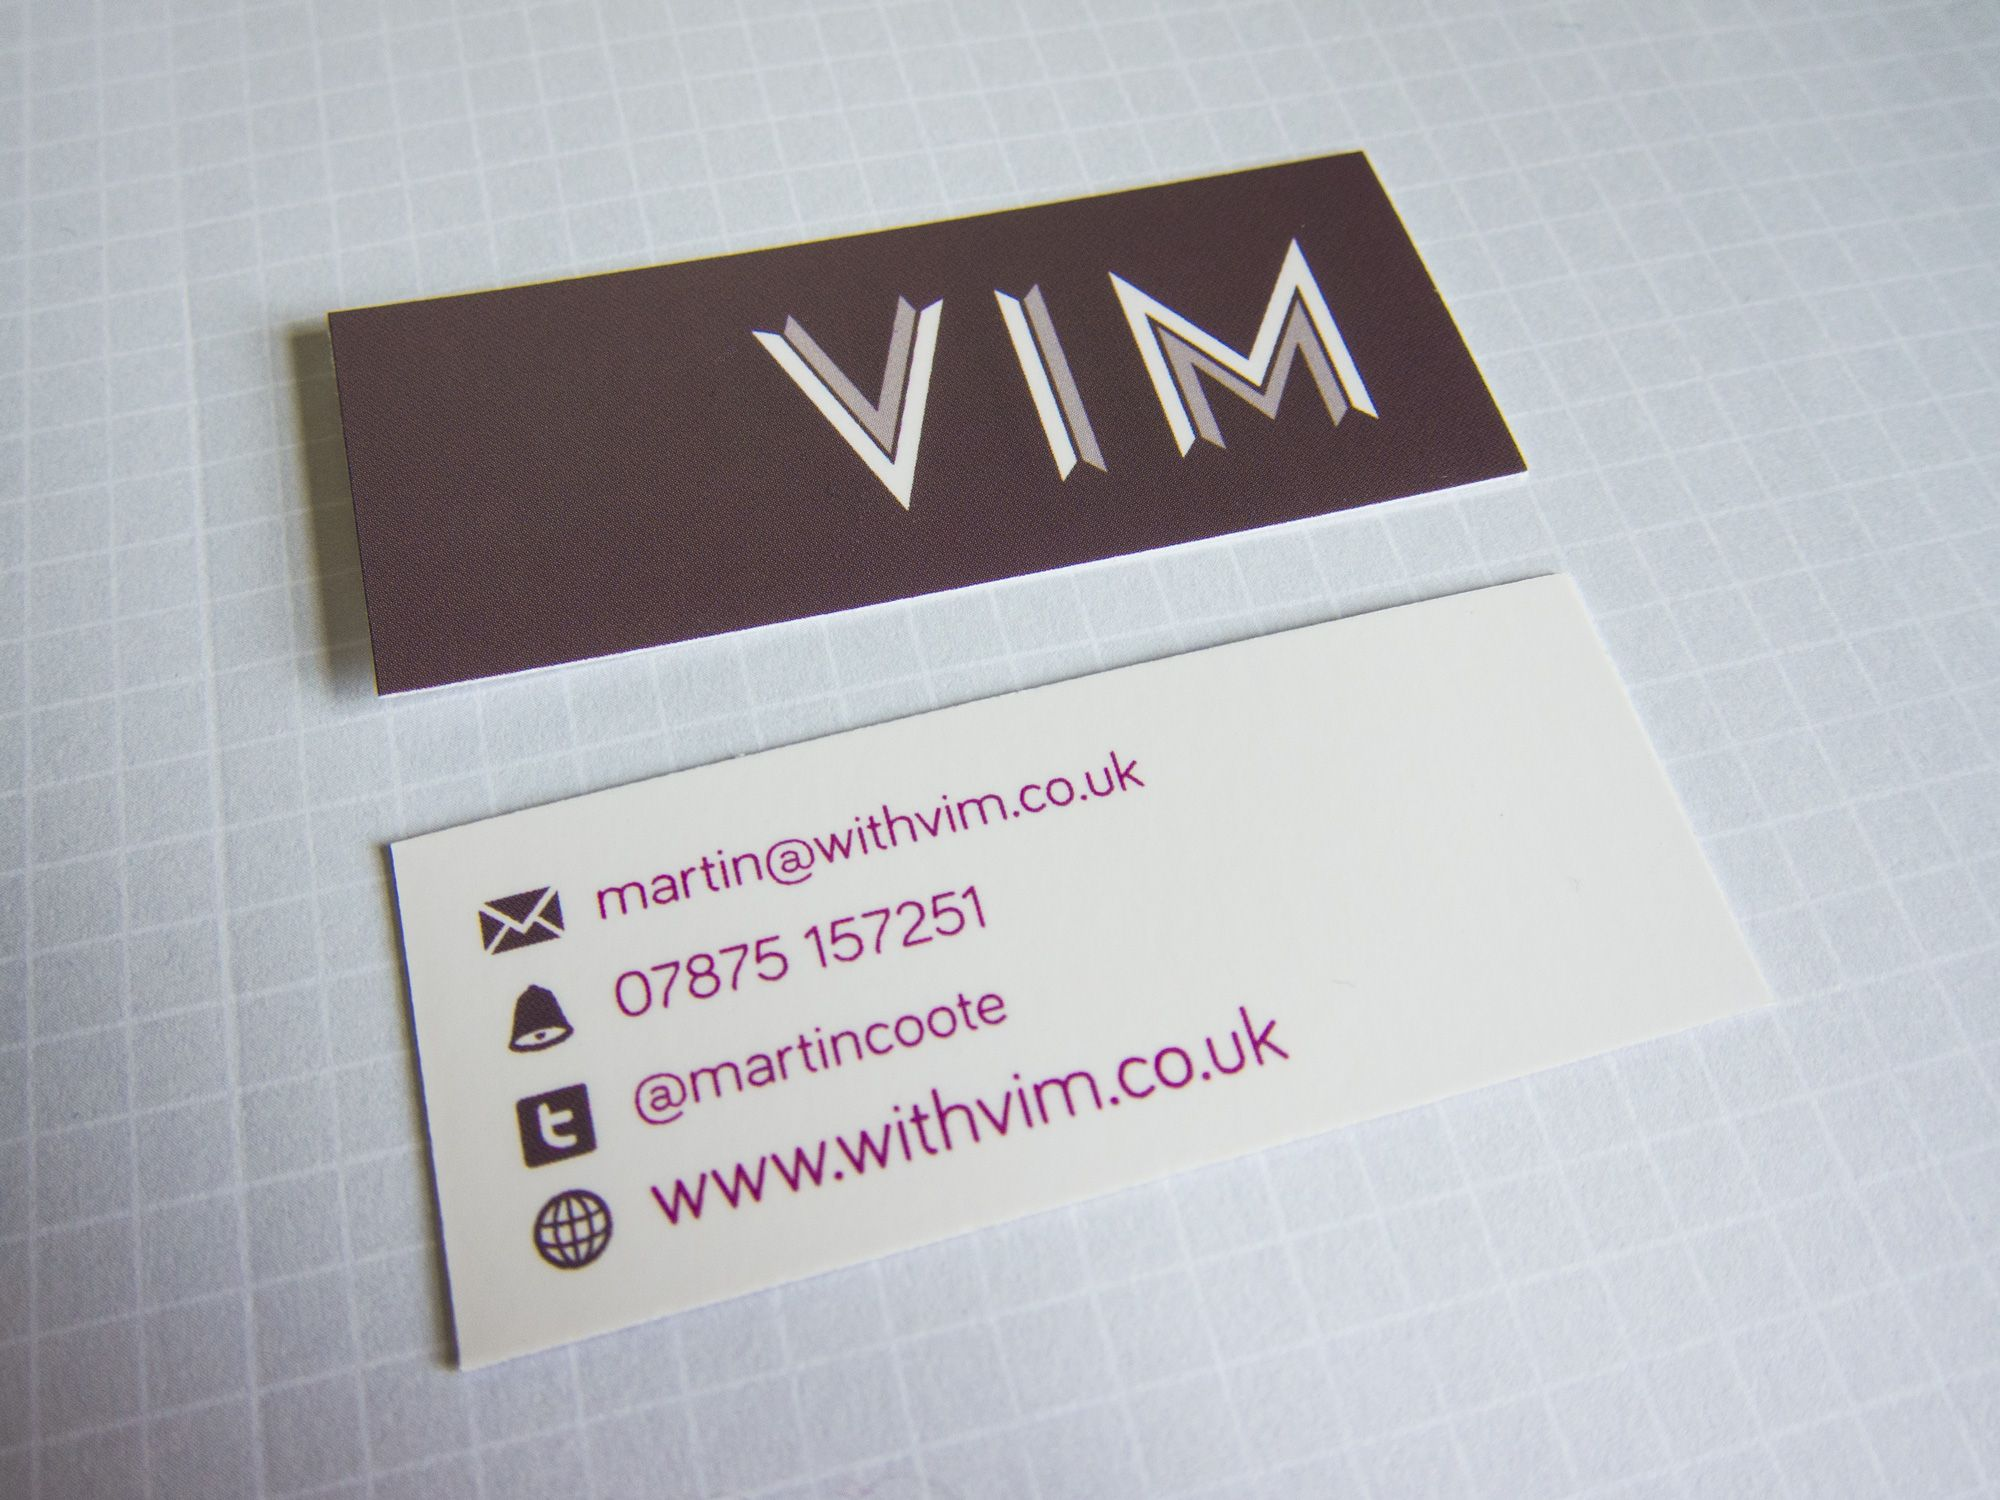 Vim moo mini business card. | Design Goodies | Pinterest | Business ...